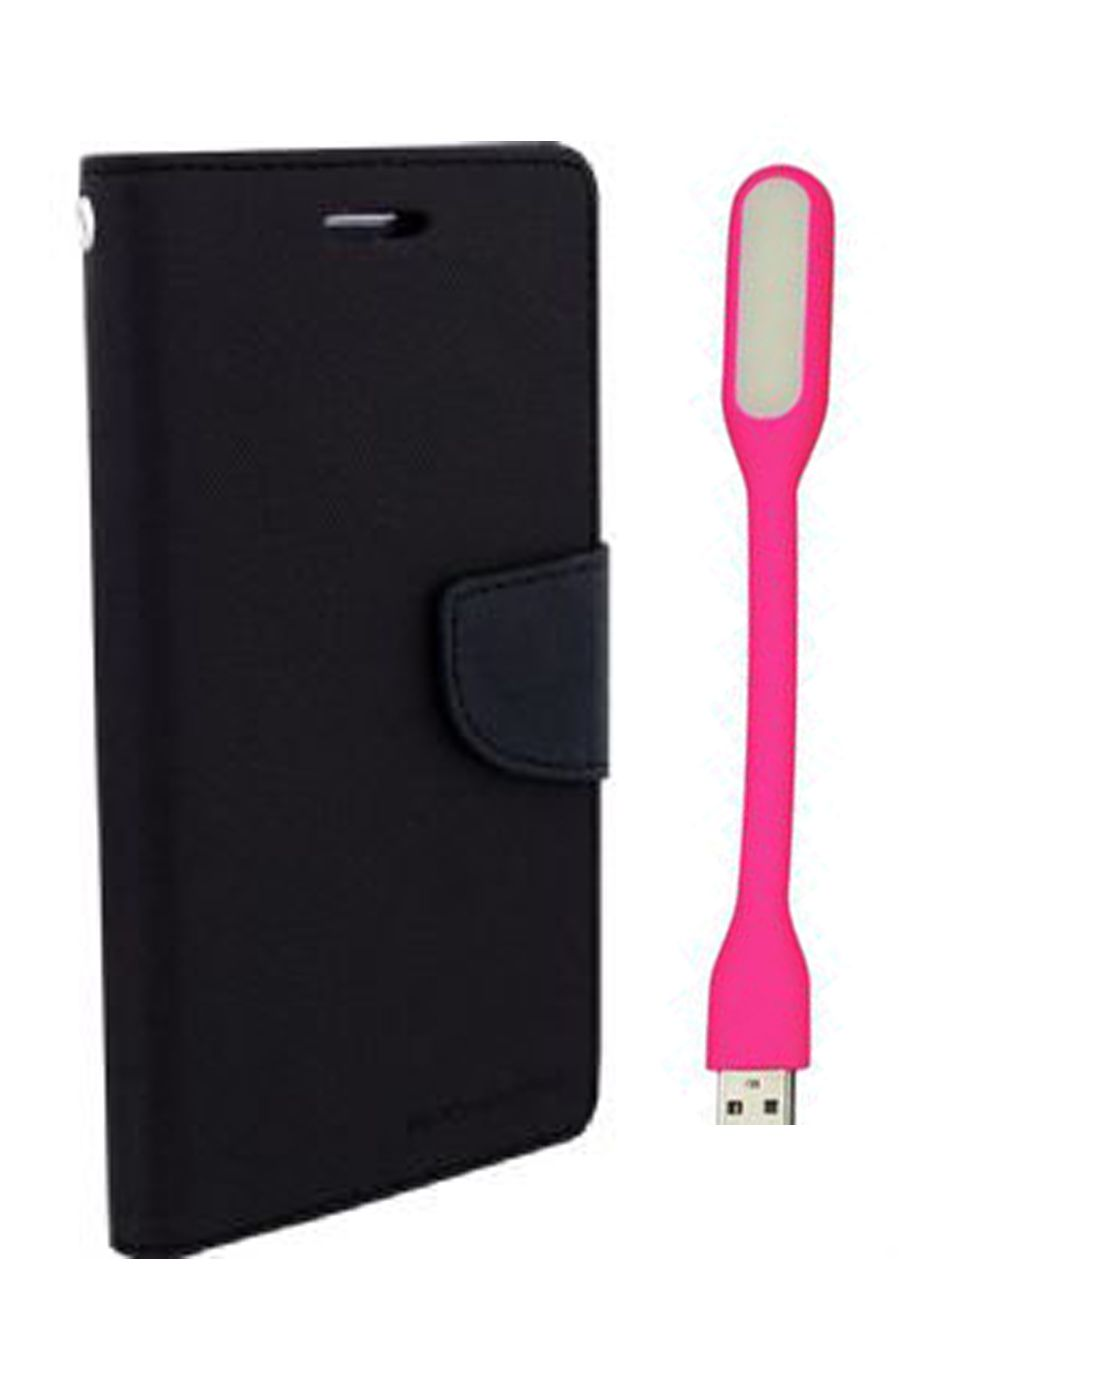 Wallet Flip Case Back Cover For Nokia 520 - (Black) + Flexible Mini LED Stick Lamp Light By Style Crome